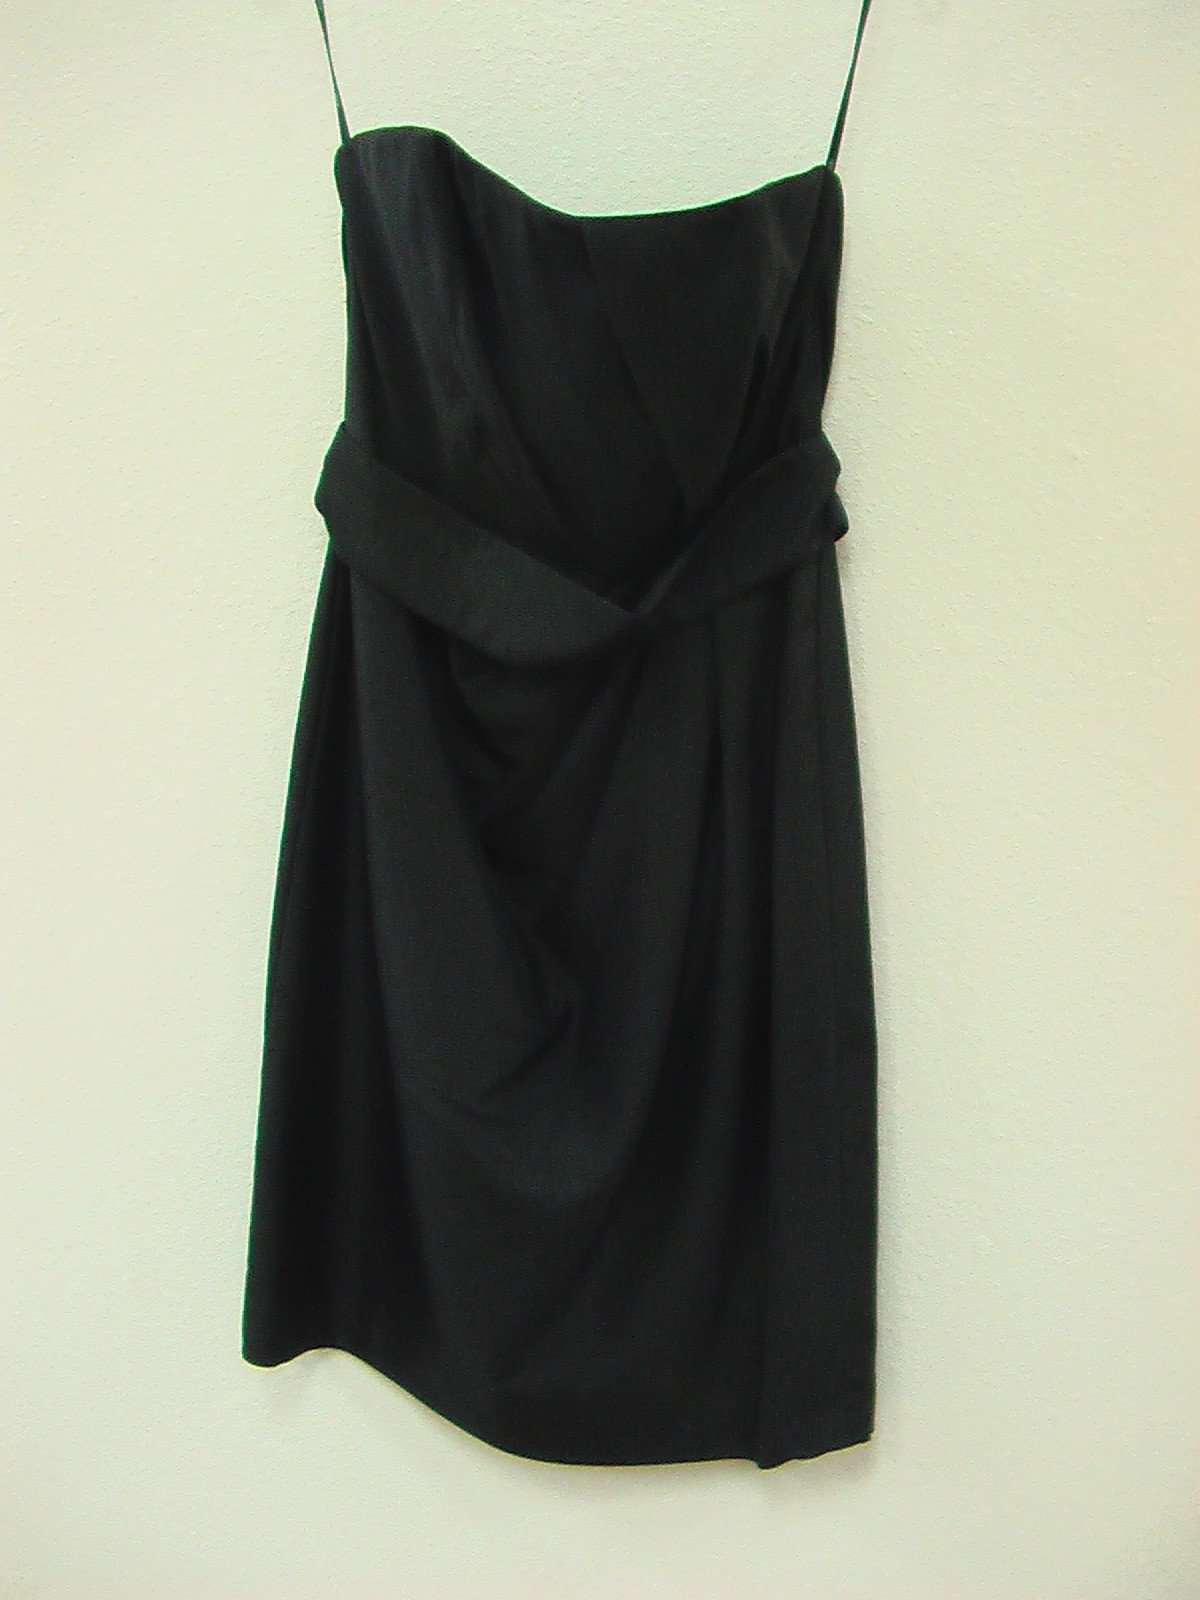 Wtoo 854 Black Size 10 In Stock Bridesmaid Dress - Tom's Bridal